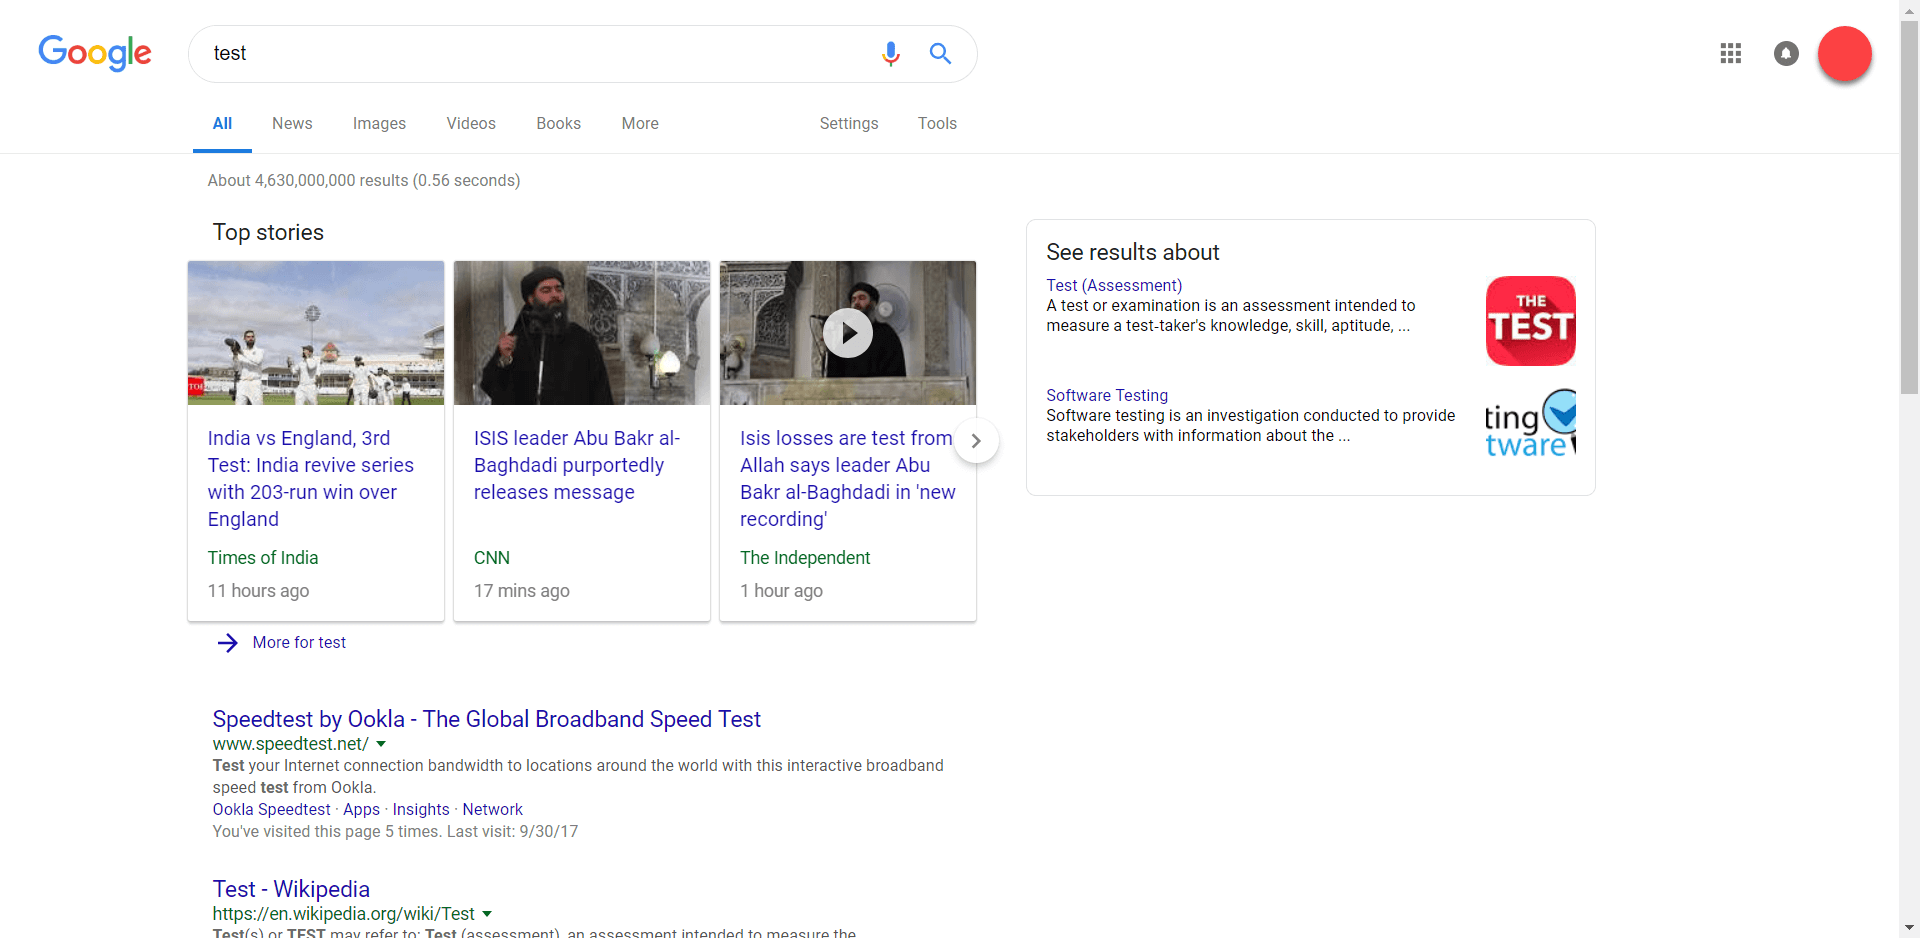 Google Confirms Testing New Search Results Design With